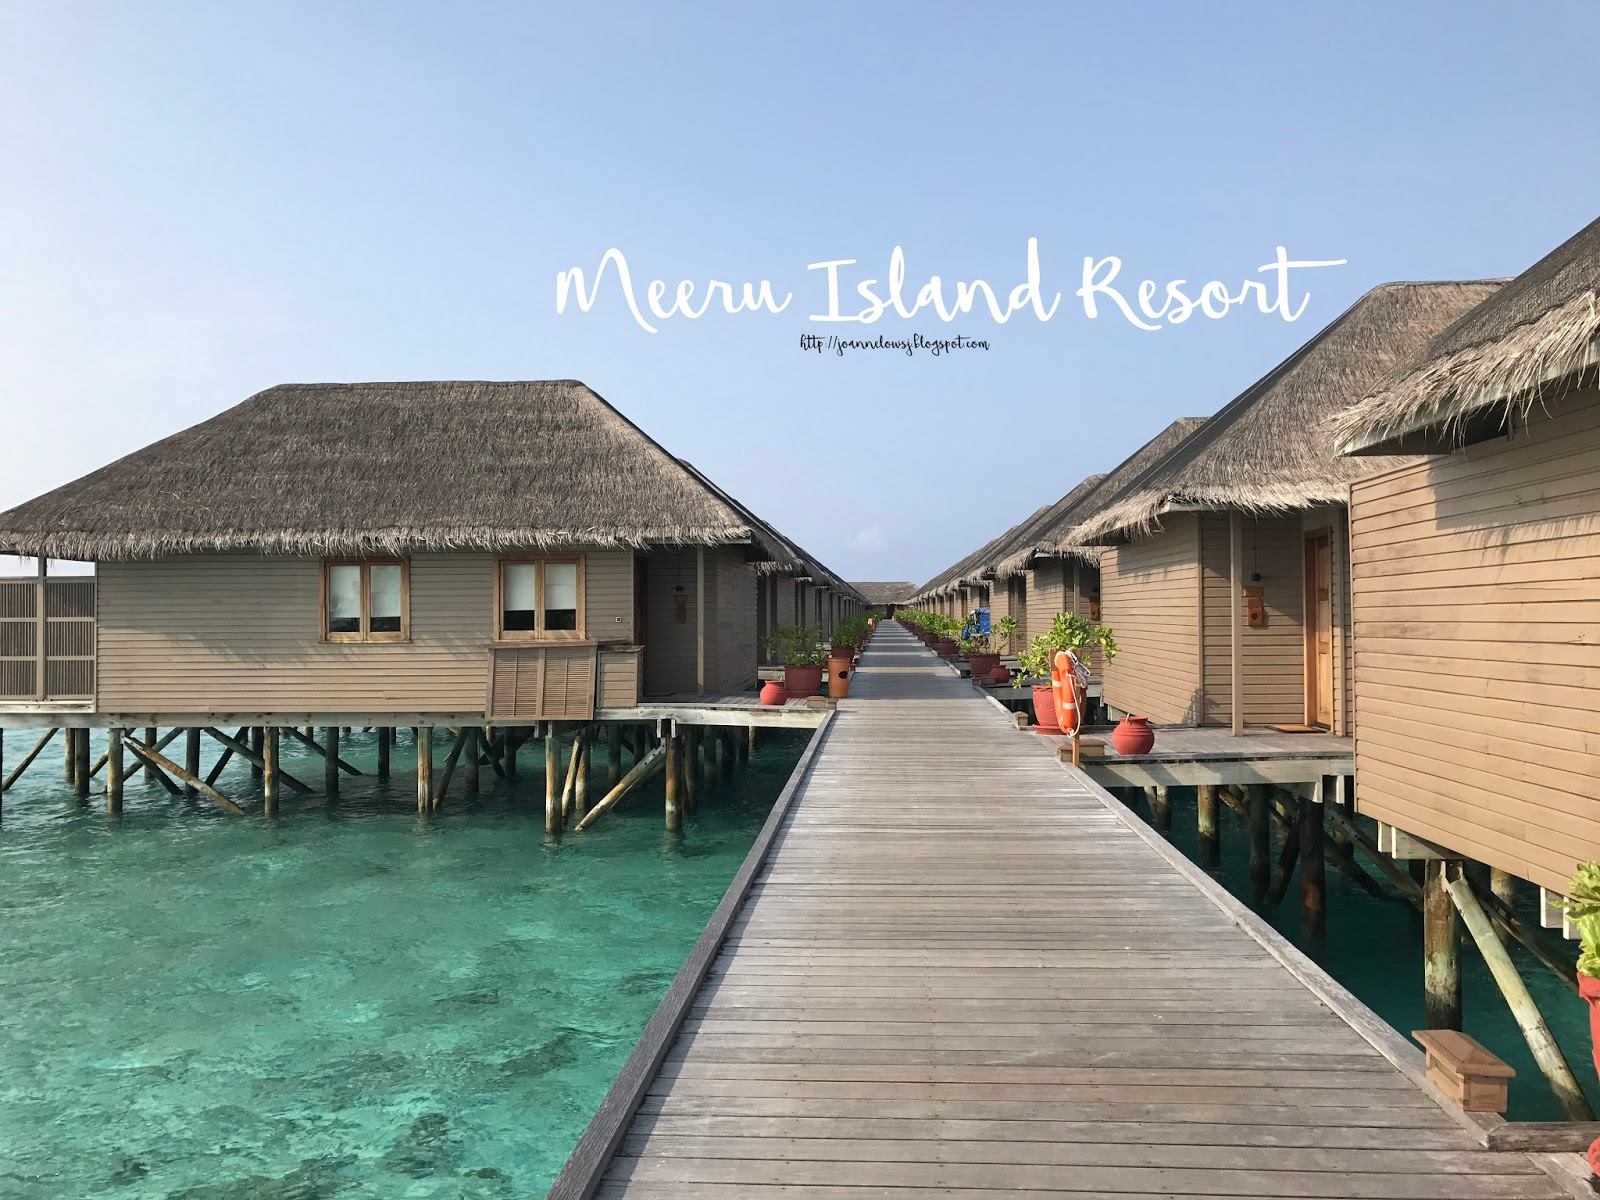 Meeru Island Resort Hotel Review Maldives: Meeru Island Resort Review /Experience With